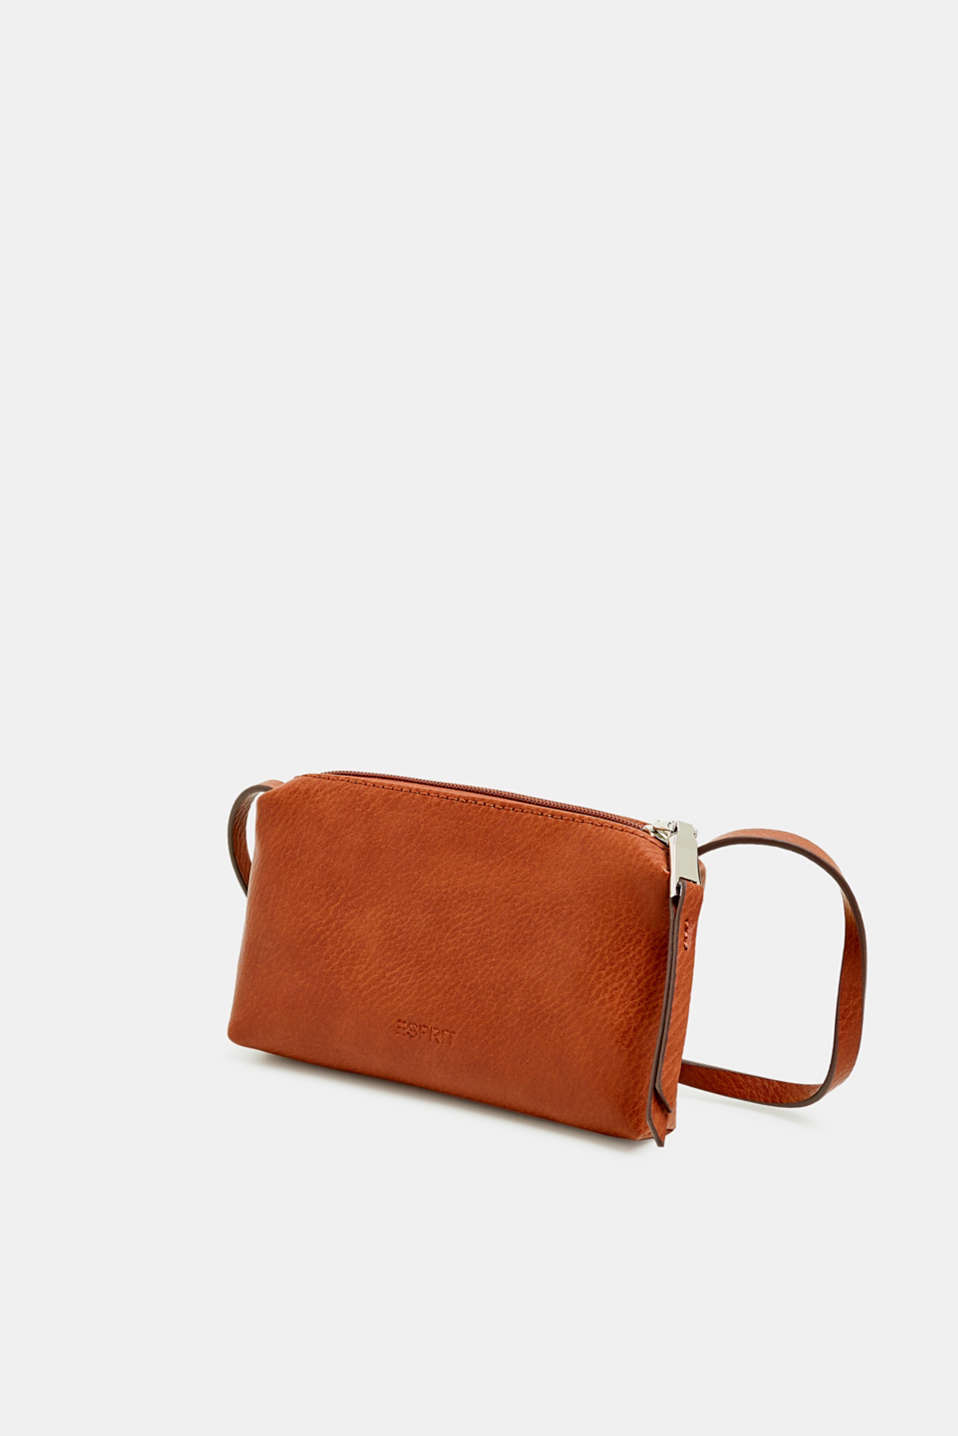 Faux leather mobile phone bag, RUST BROWN, detail image number 2